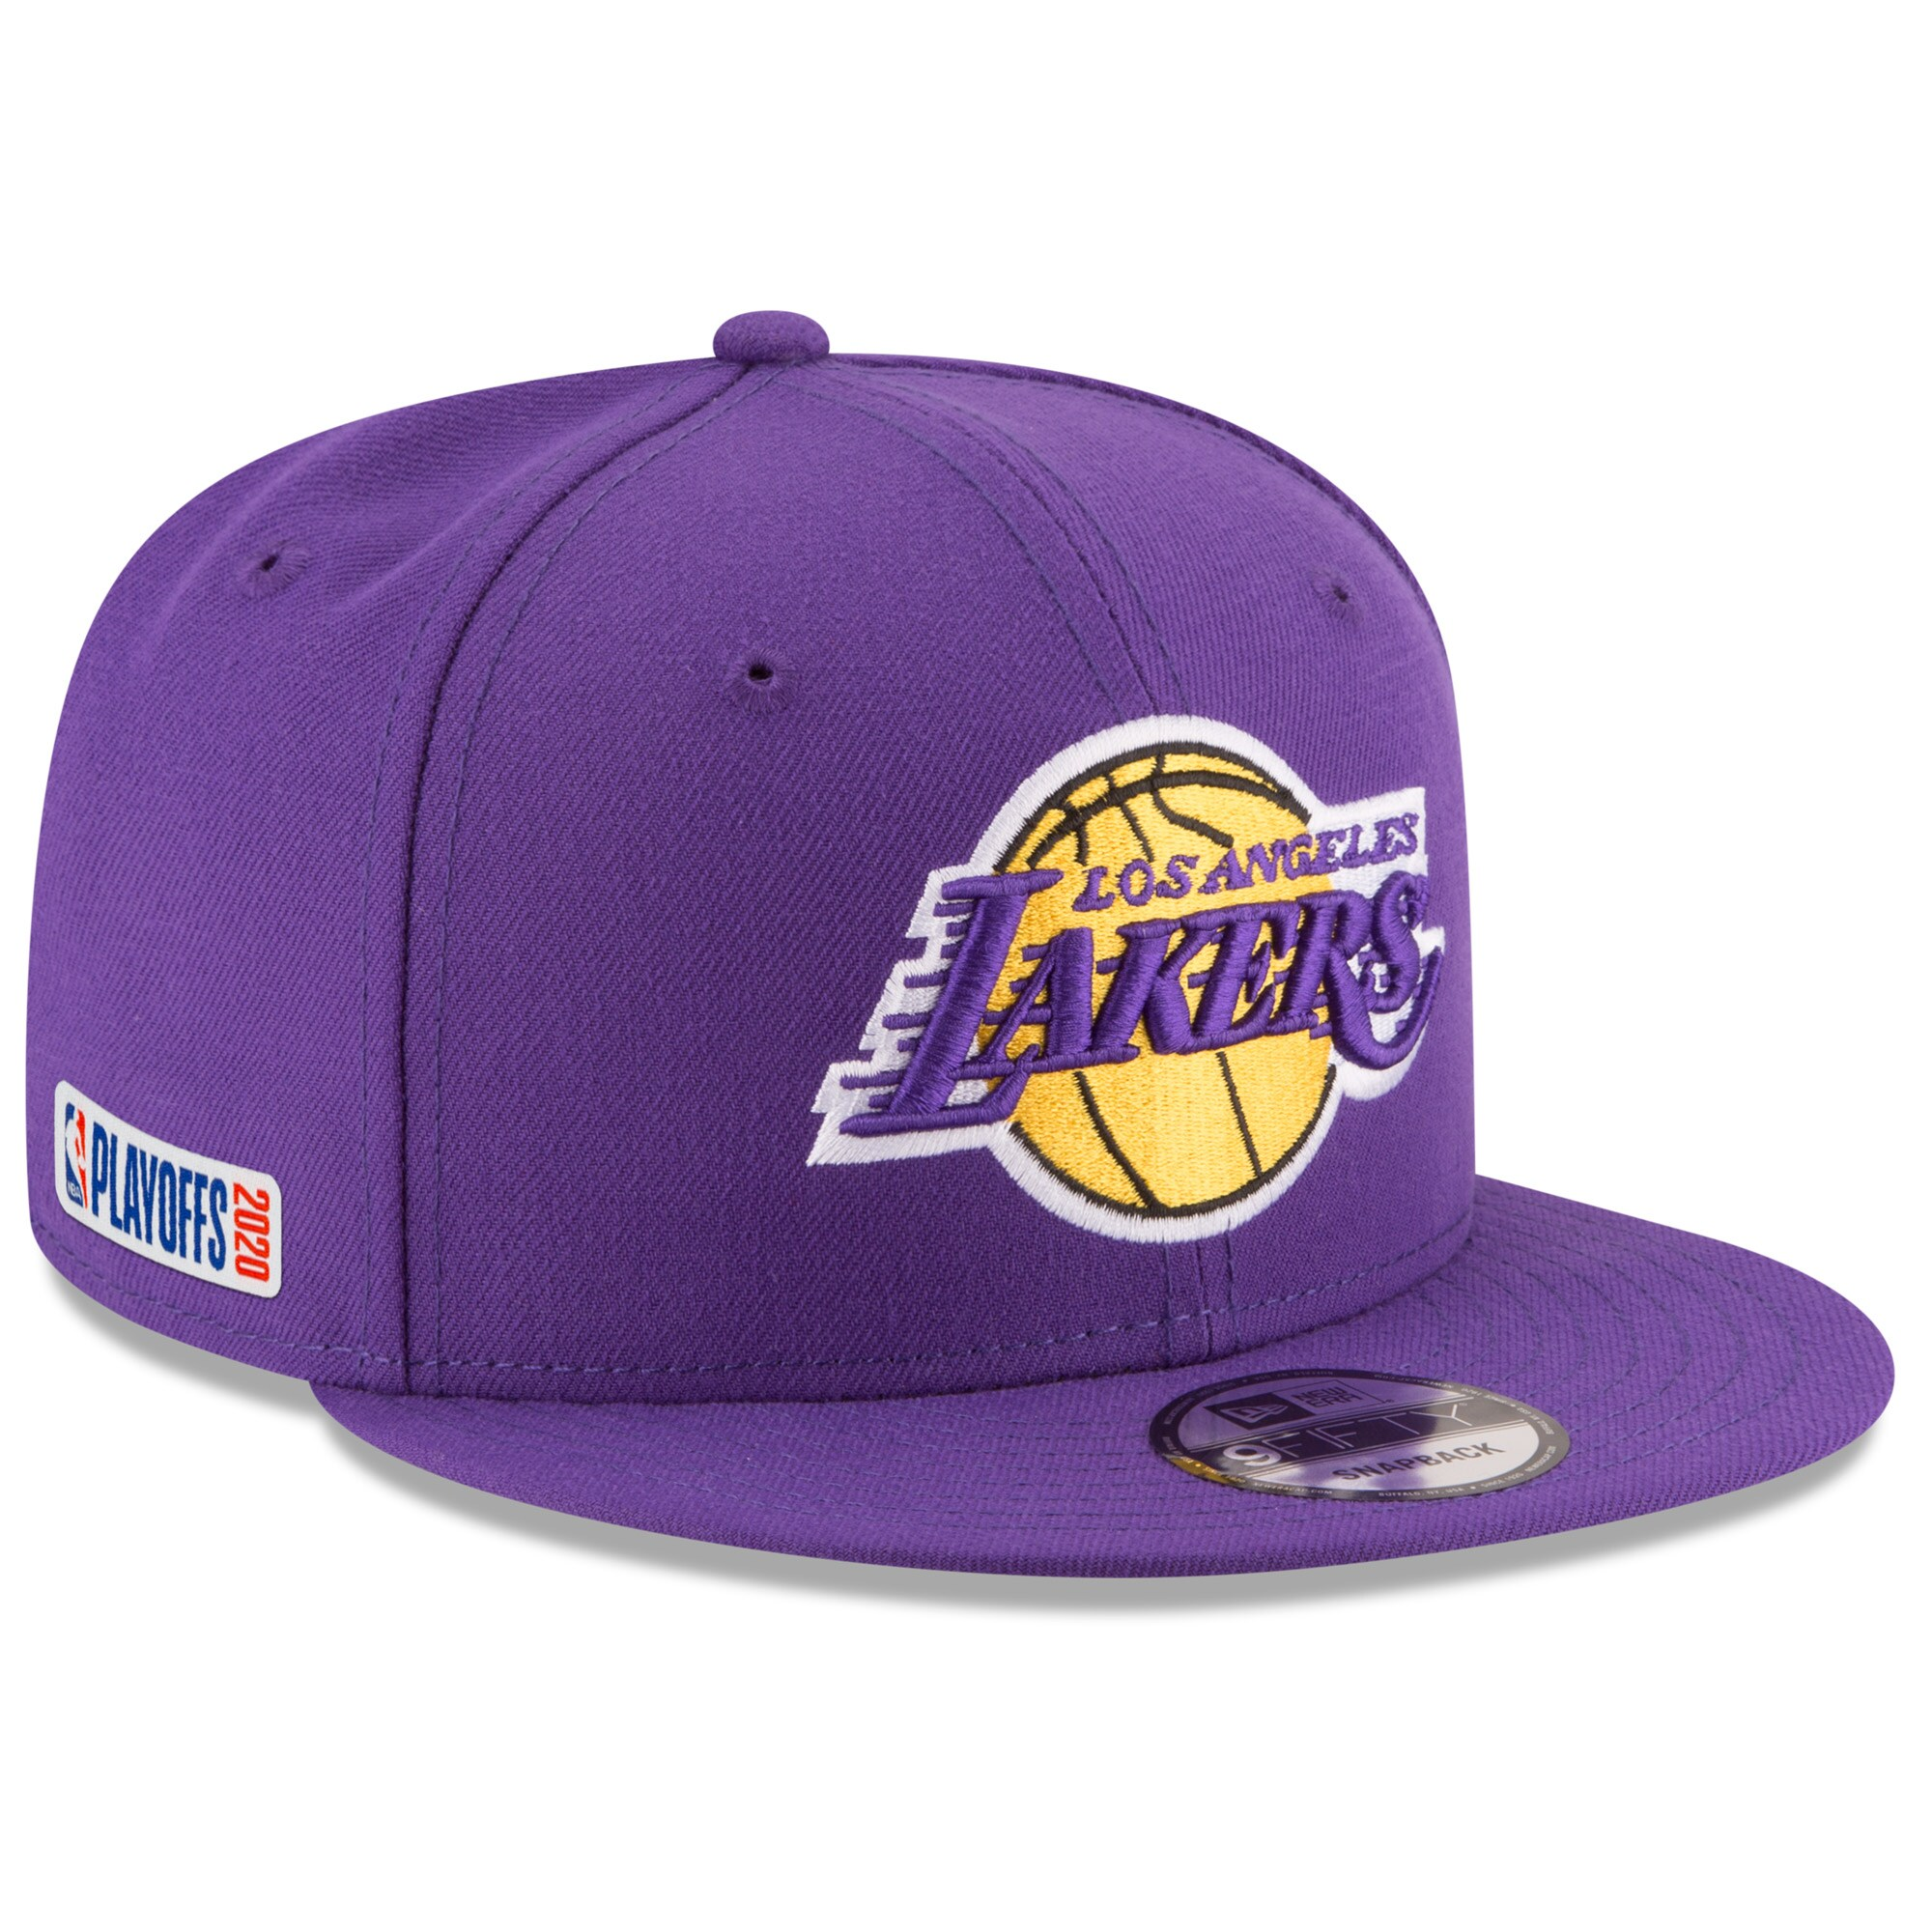 Los Angeles Lakers New Era 2020 NBA Playoffs Bound 9FIFTY Snapback Adjustable Hat - Purple